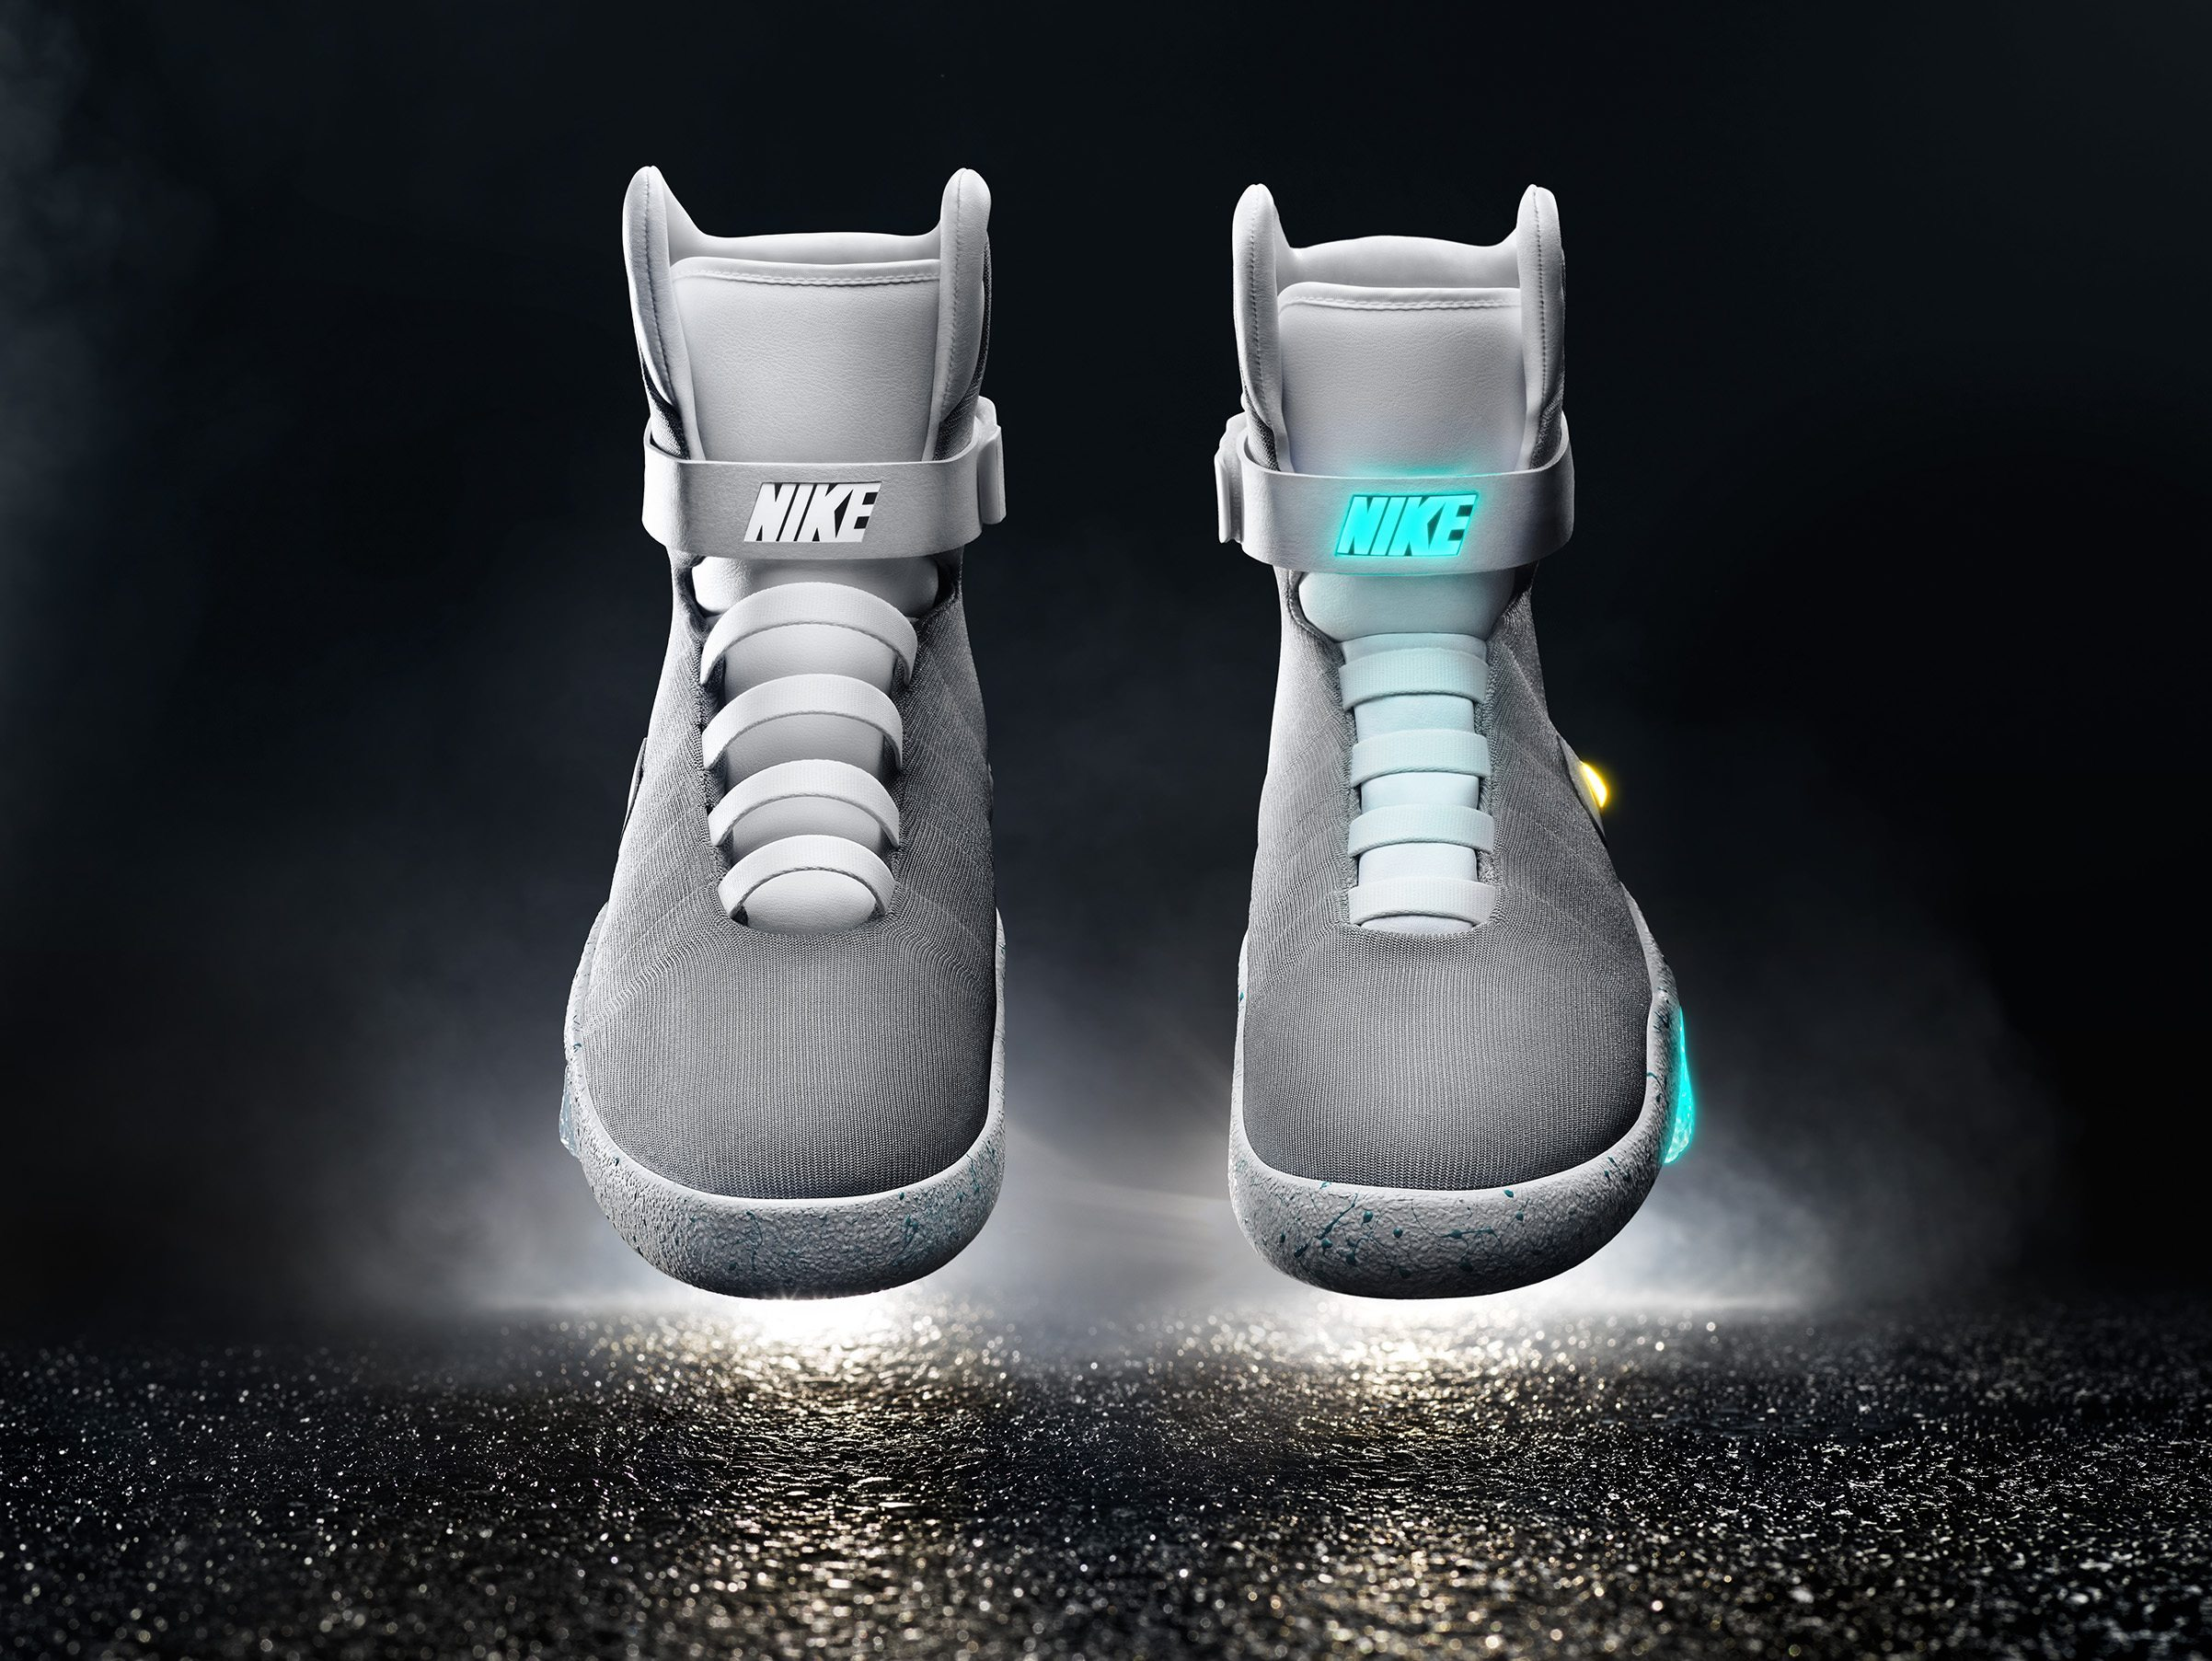 The 2015 Nike MAG 4